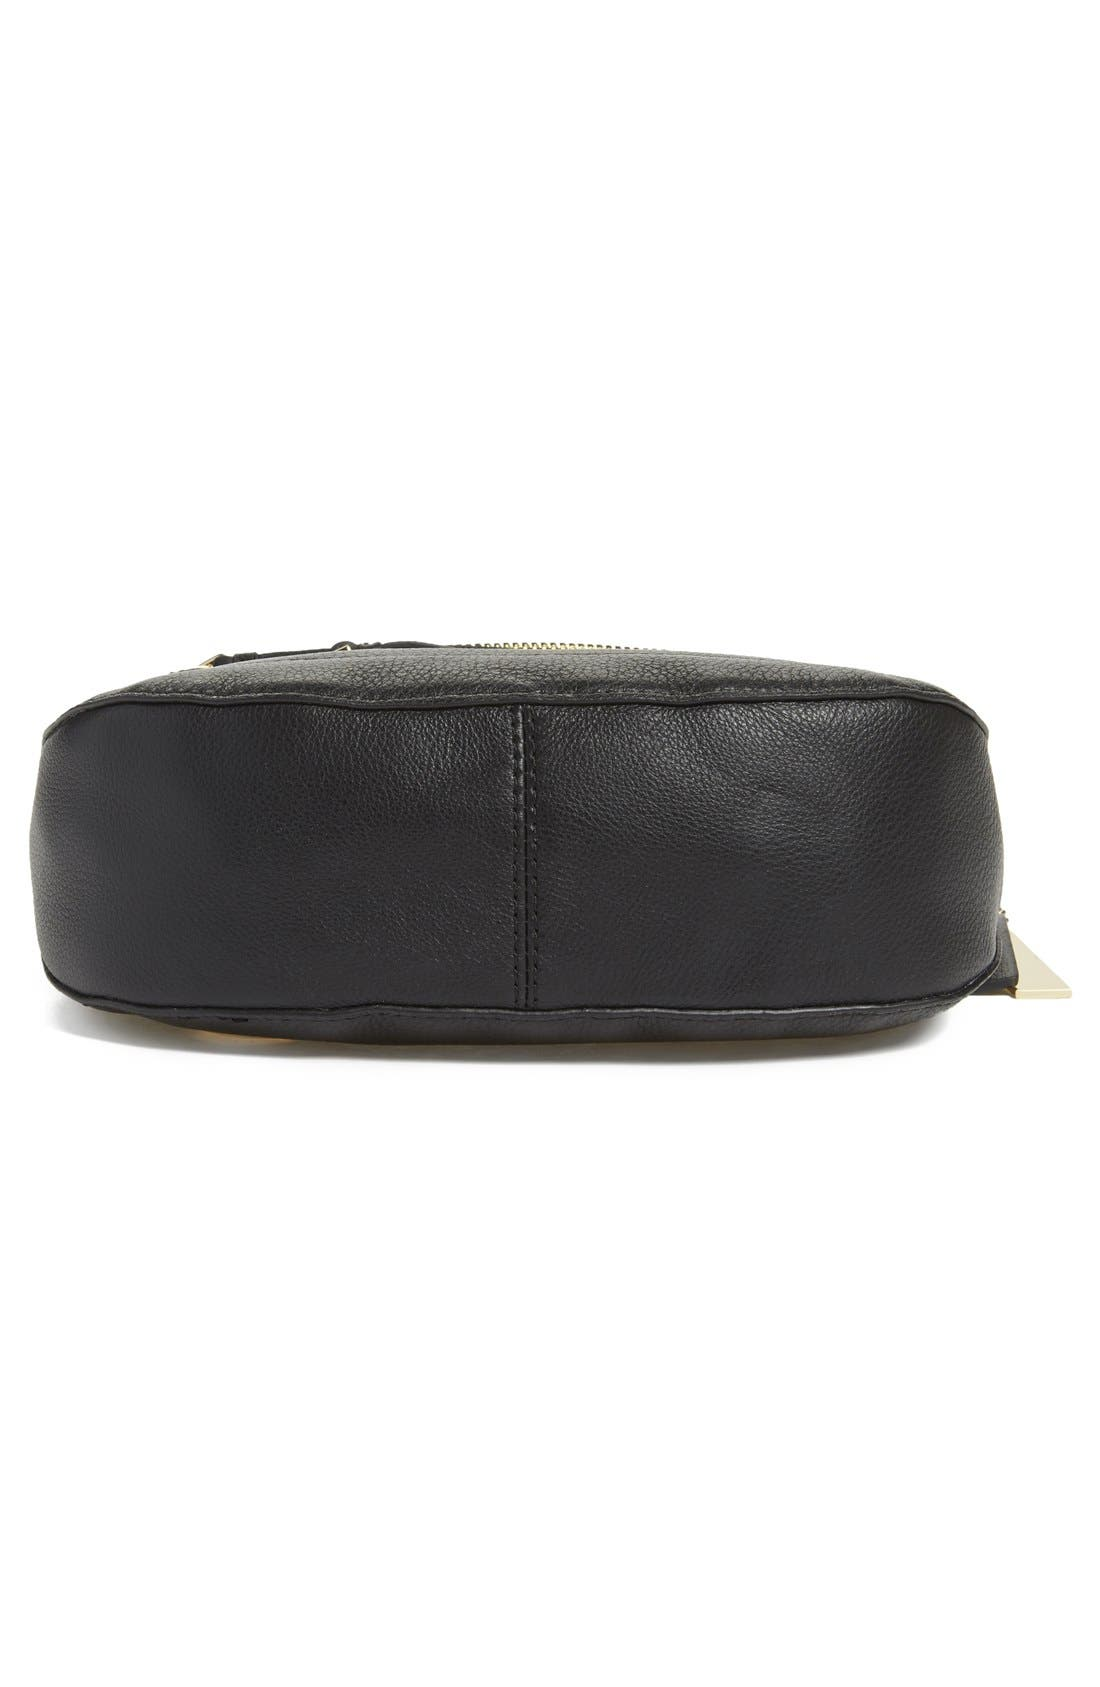 'Tala' Leather Crossbody Bag,                             Alternate thumbnail 9, color,